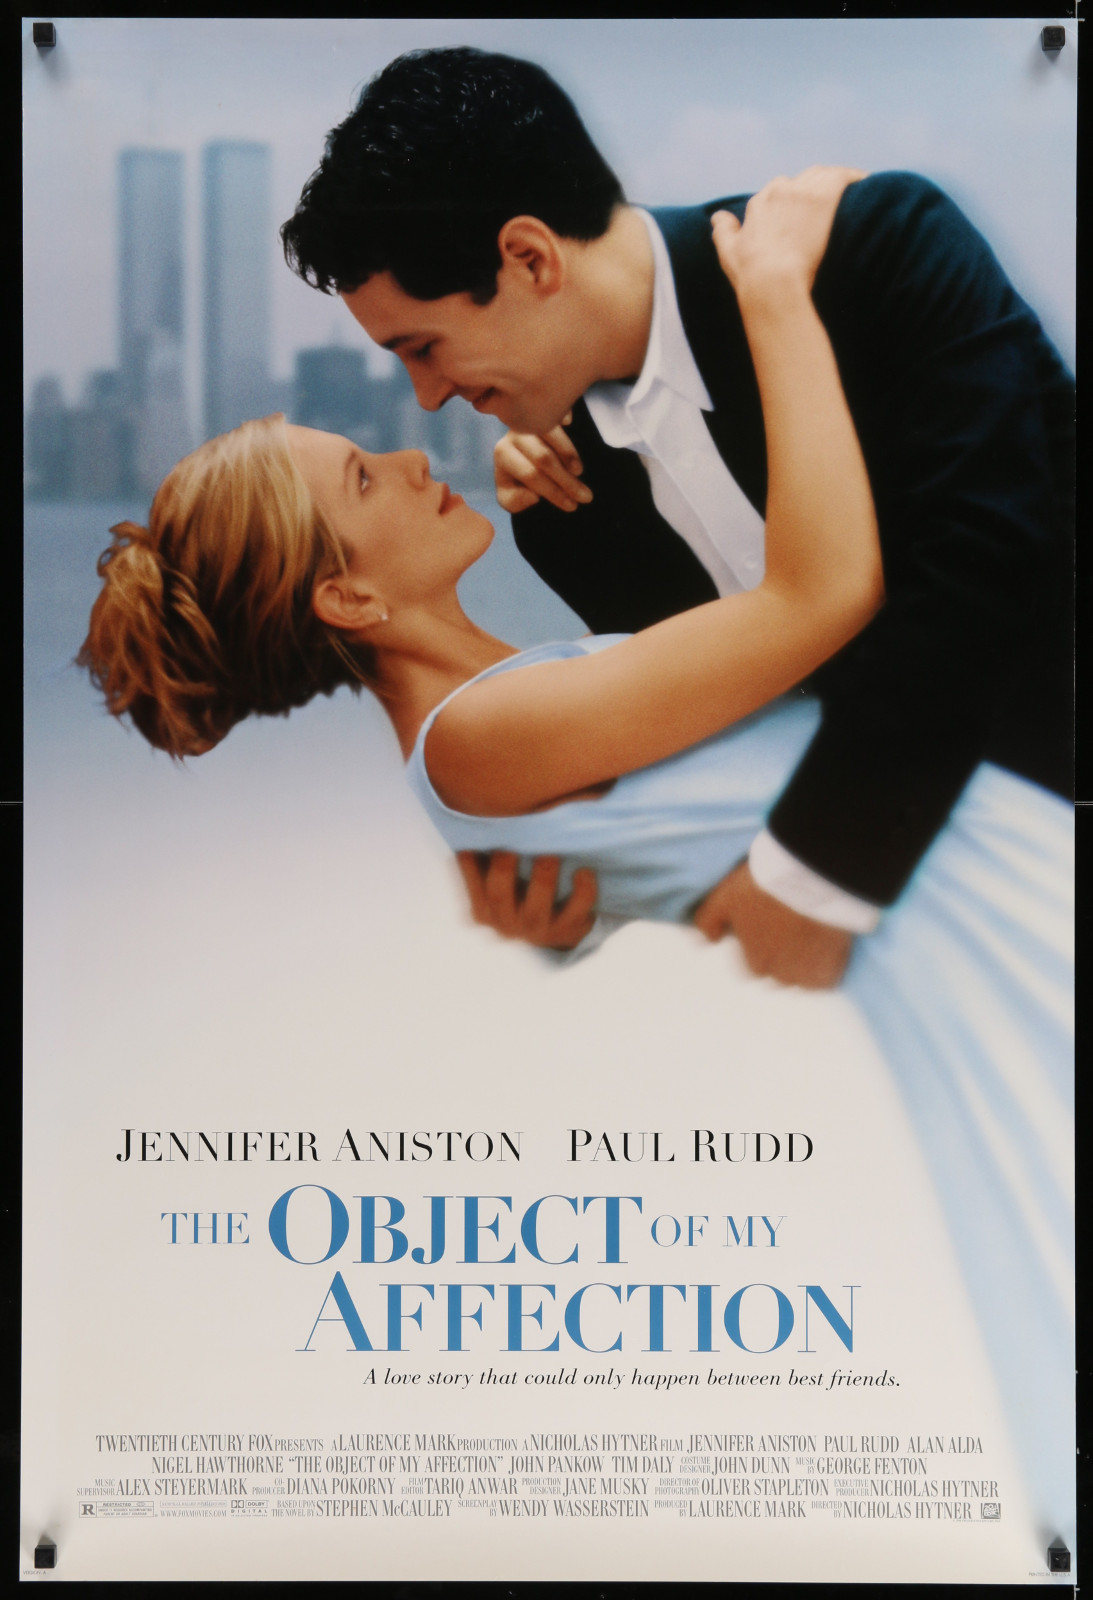 The Object Of My Affection 2A446 A Part Of A Lot 17 Unfolded Mostly Double-Sided 27X40 One-Sheets '90S-00S Great Movie Images!